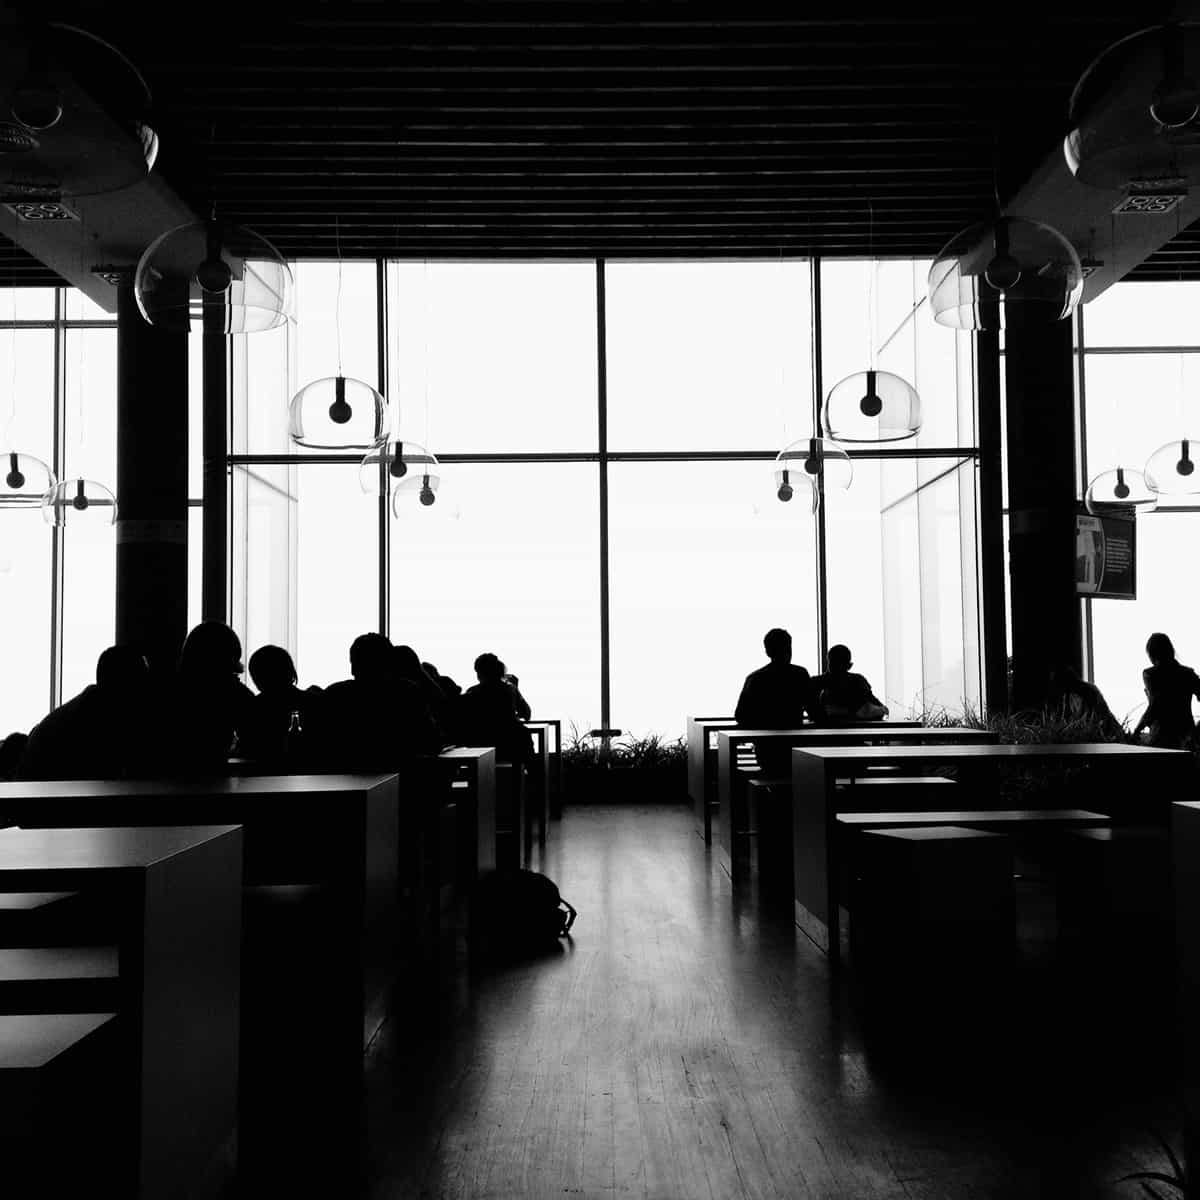 Image of people sitting on benches around tables.